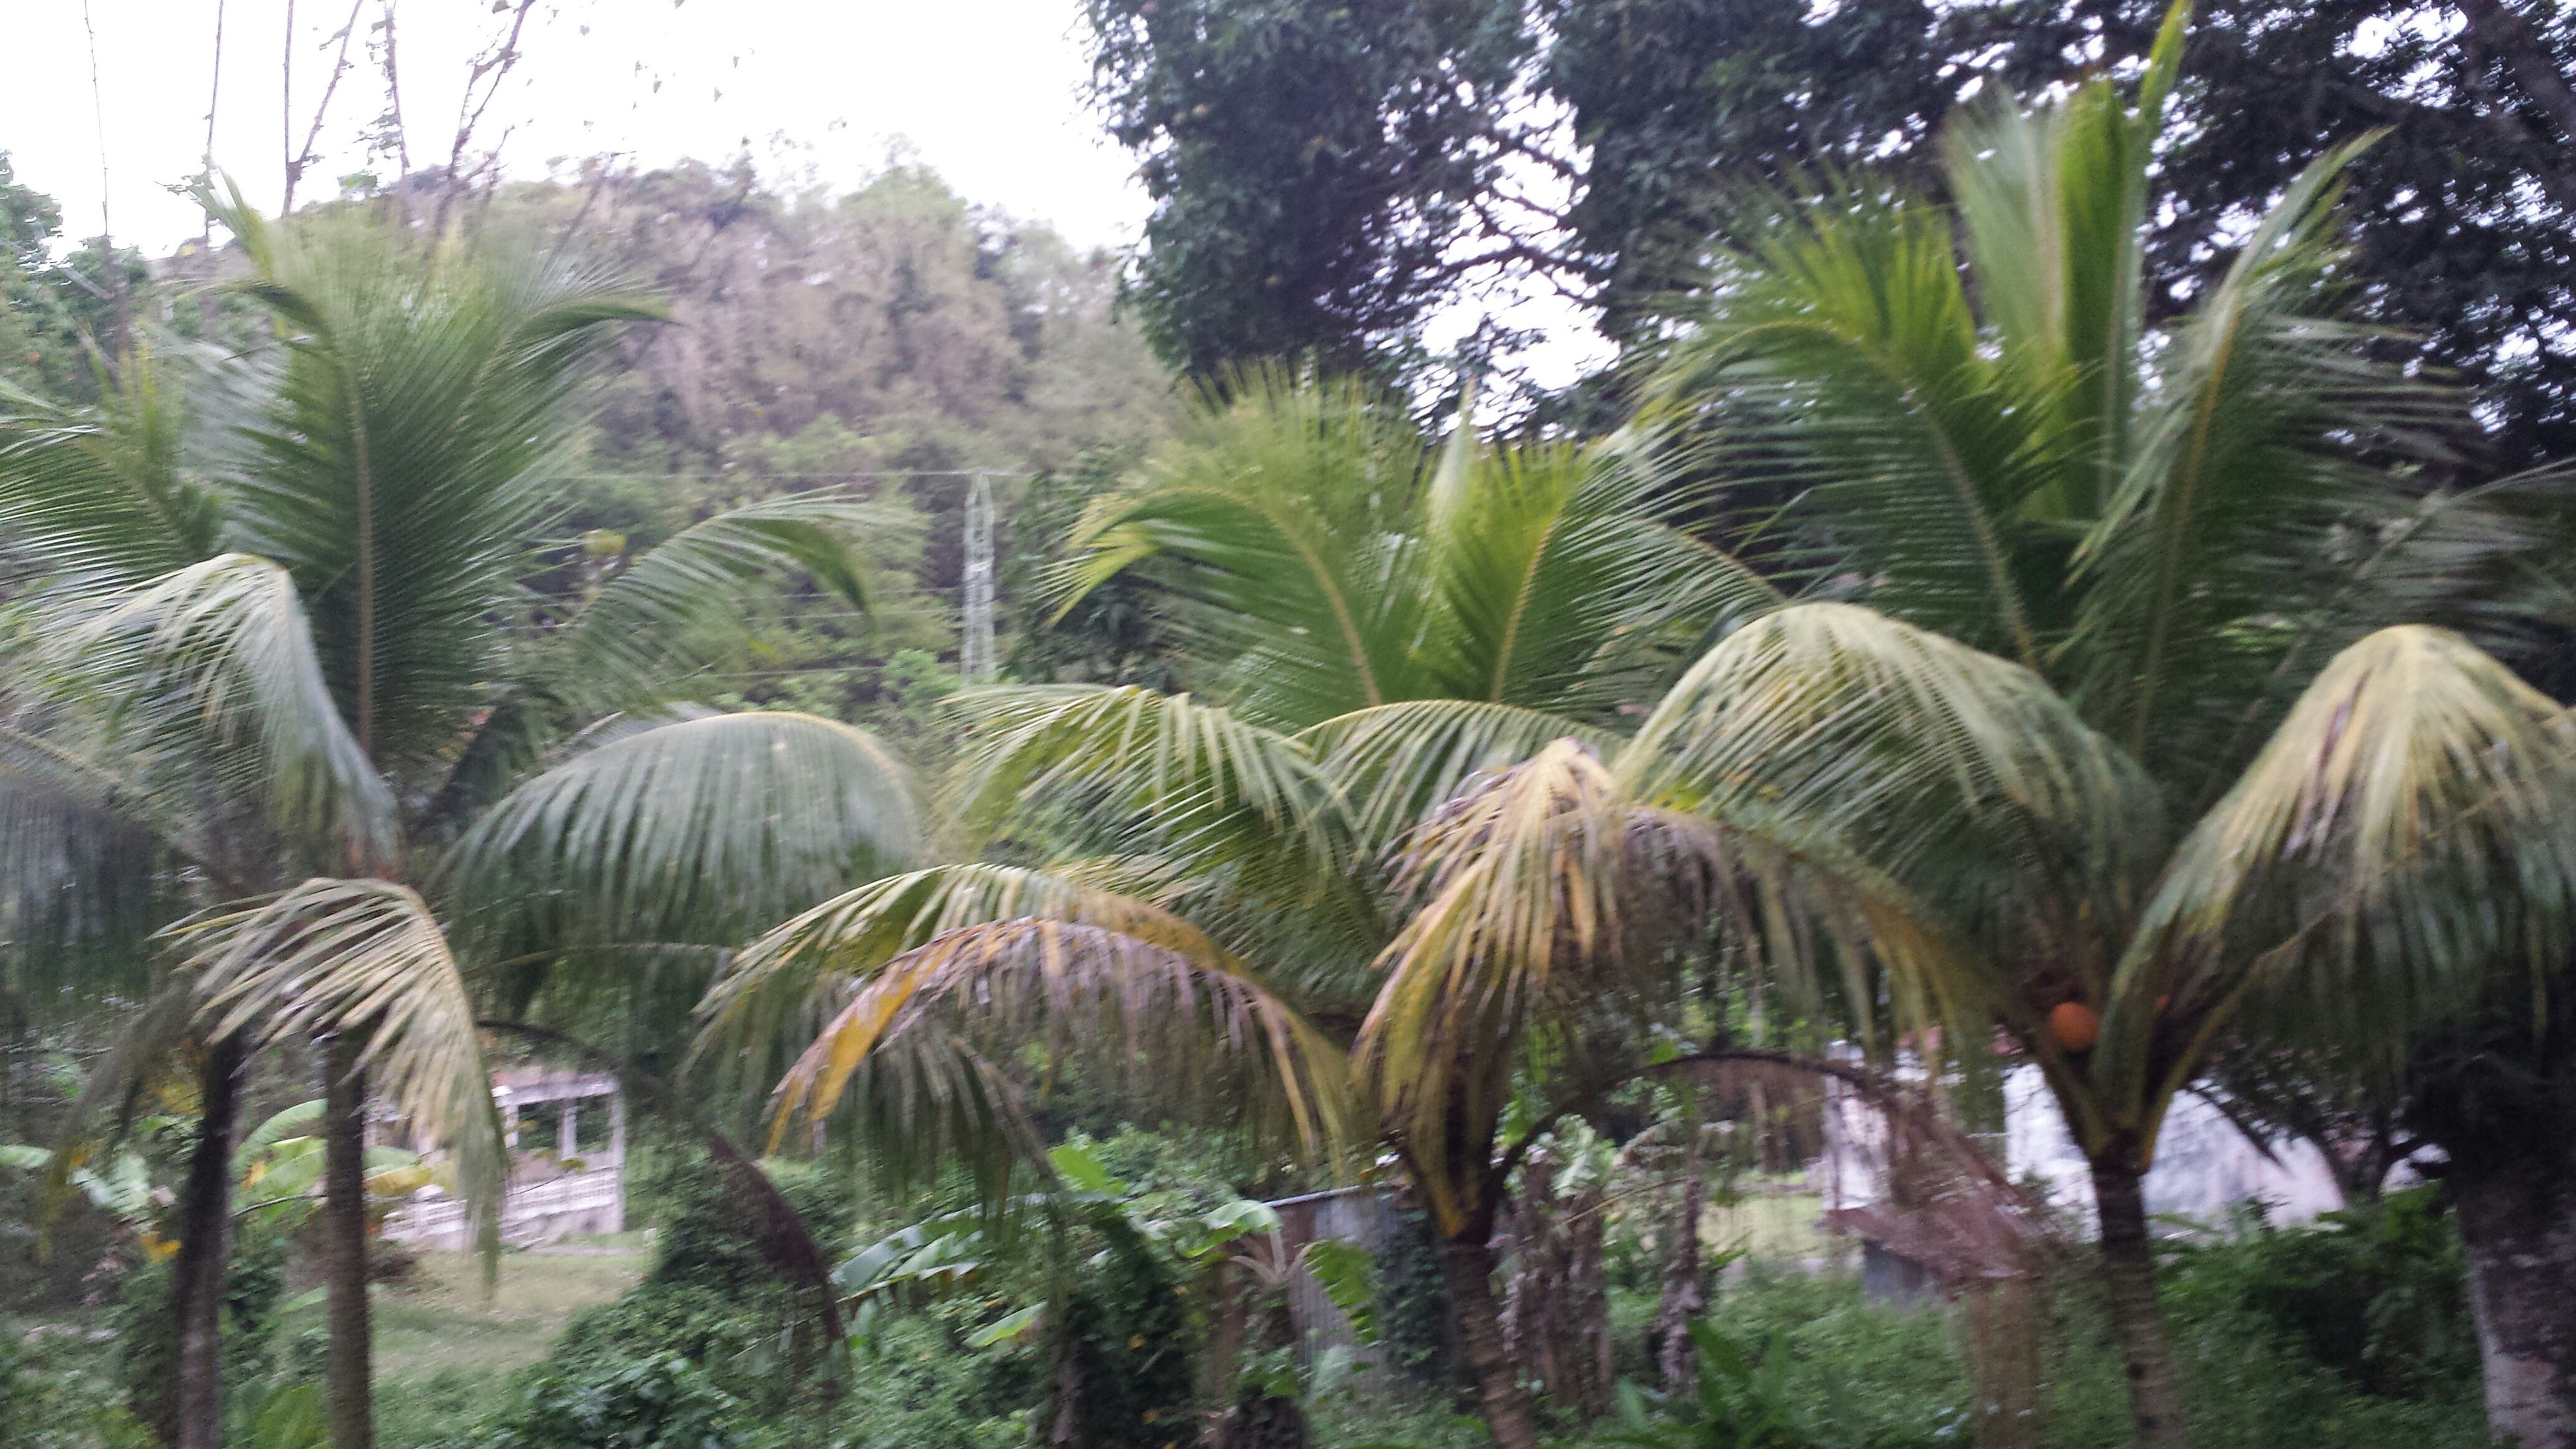 palm tree, tree, growth, nature, green color, beauty in nature, tranquility, plant, tranquil scene, tree trunk, tropical climate, scenics, growing, cactus, green, coconut palm tree, outdoors, day, leaf, no people